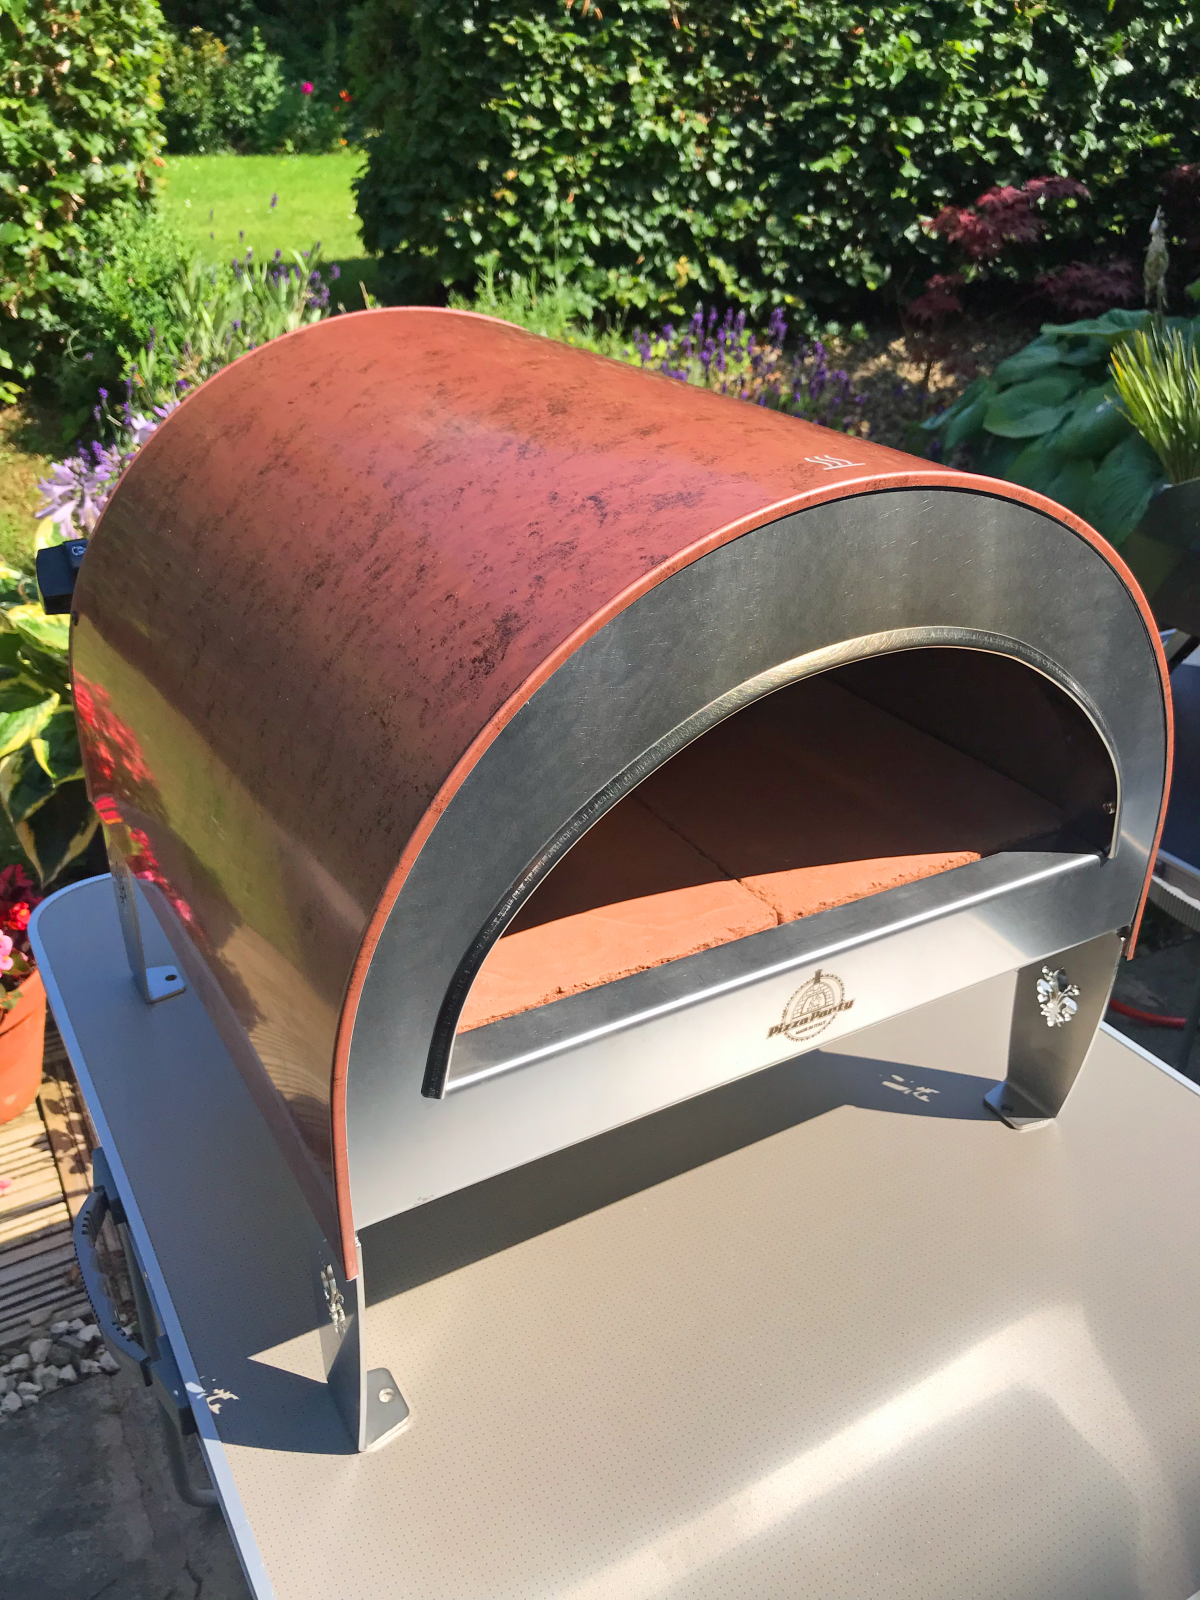 Cooking Pepperoni Pizza in the Pizza Party Ardore Pizza Oven